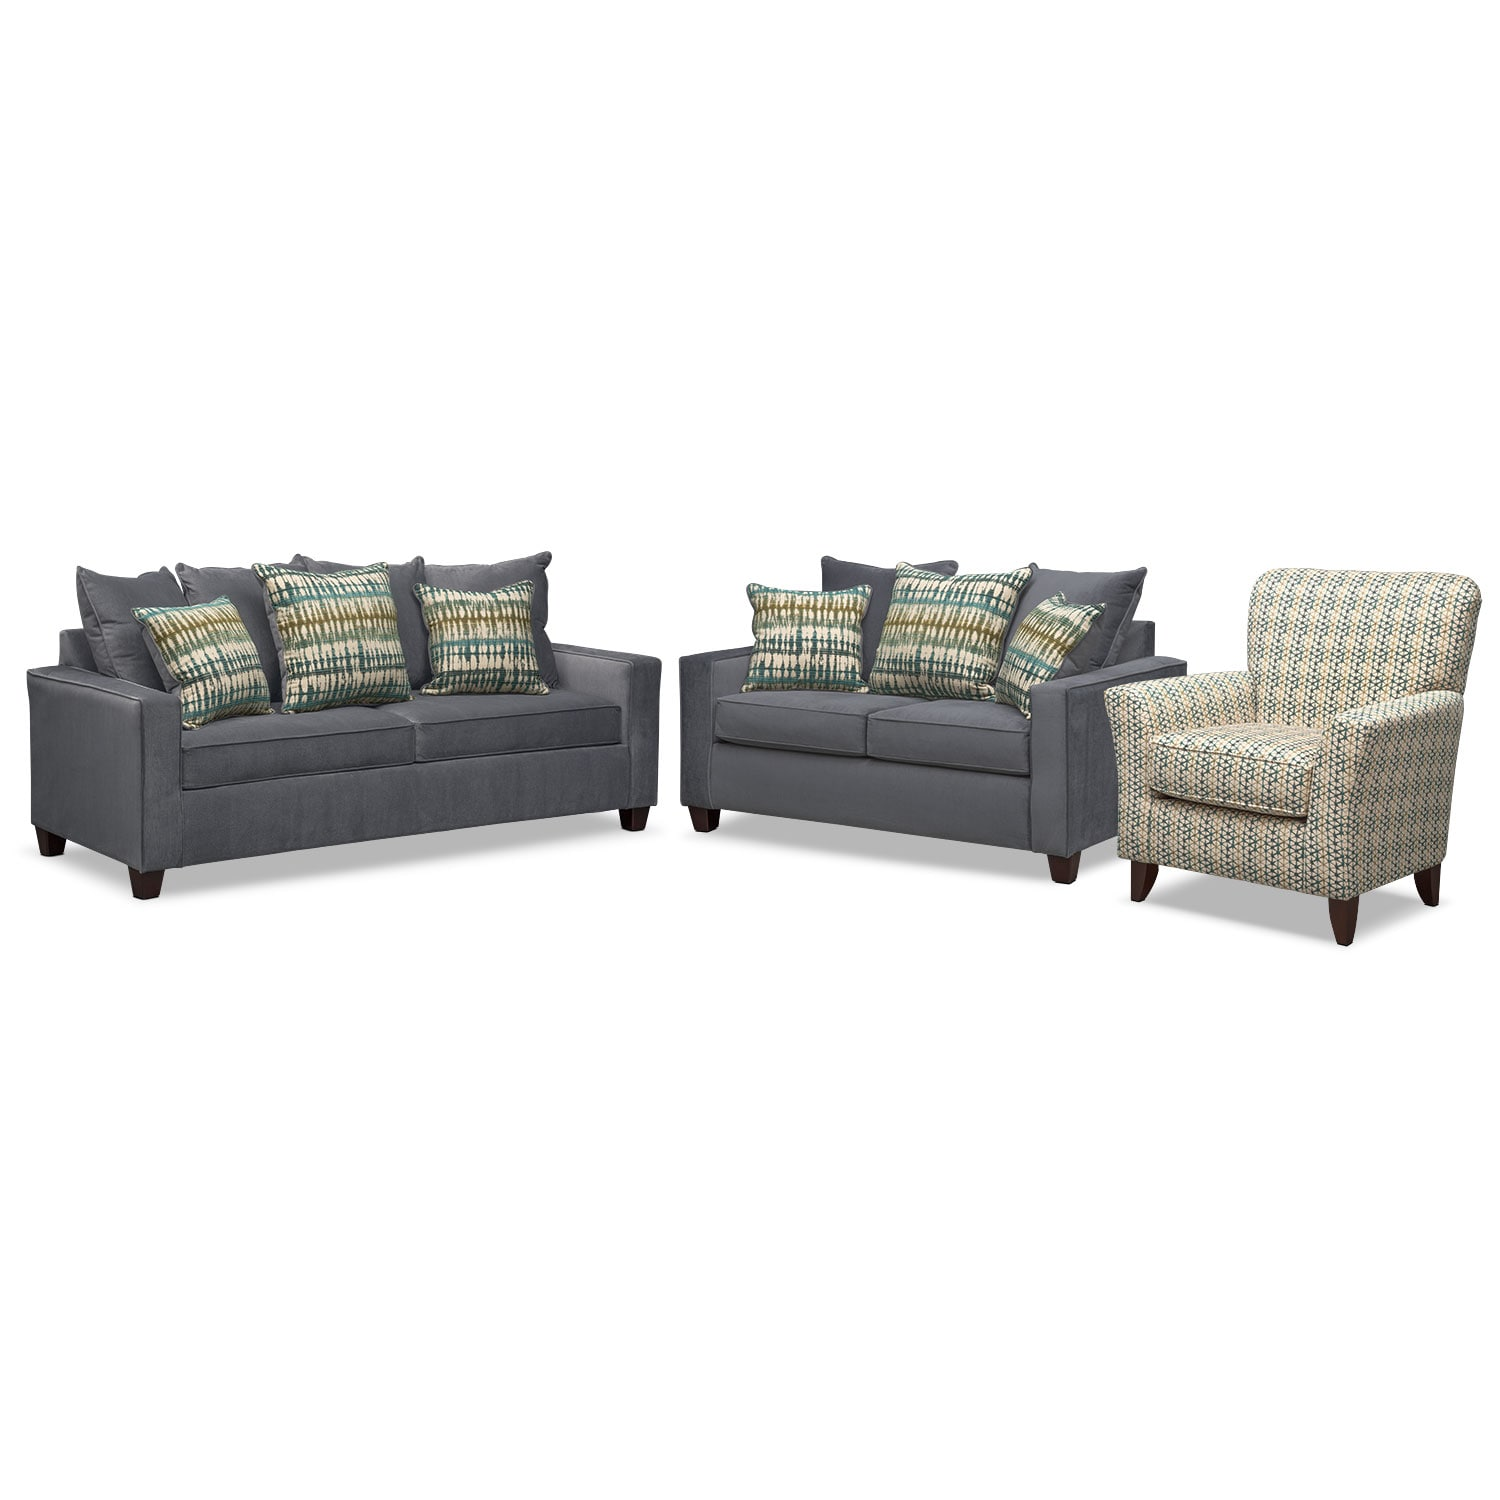 Living Room Furniture - Bryden Queen Innerspring Sleeper Sofa, Loveseat and Accent Chair Set - Slate